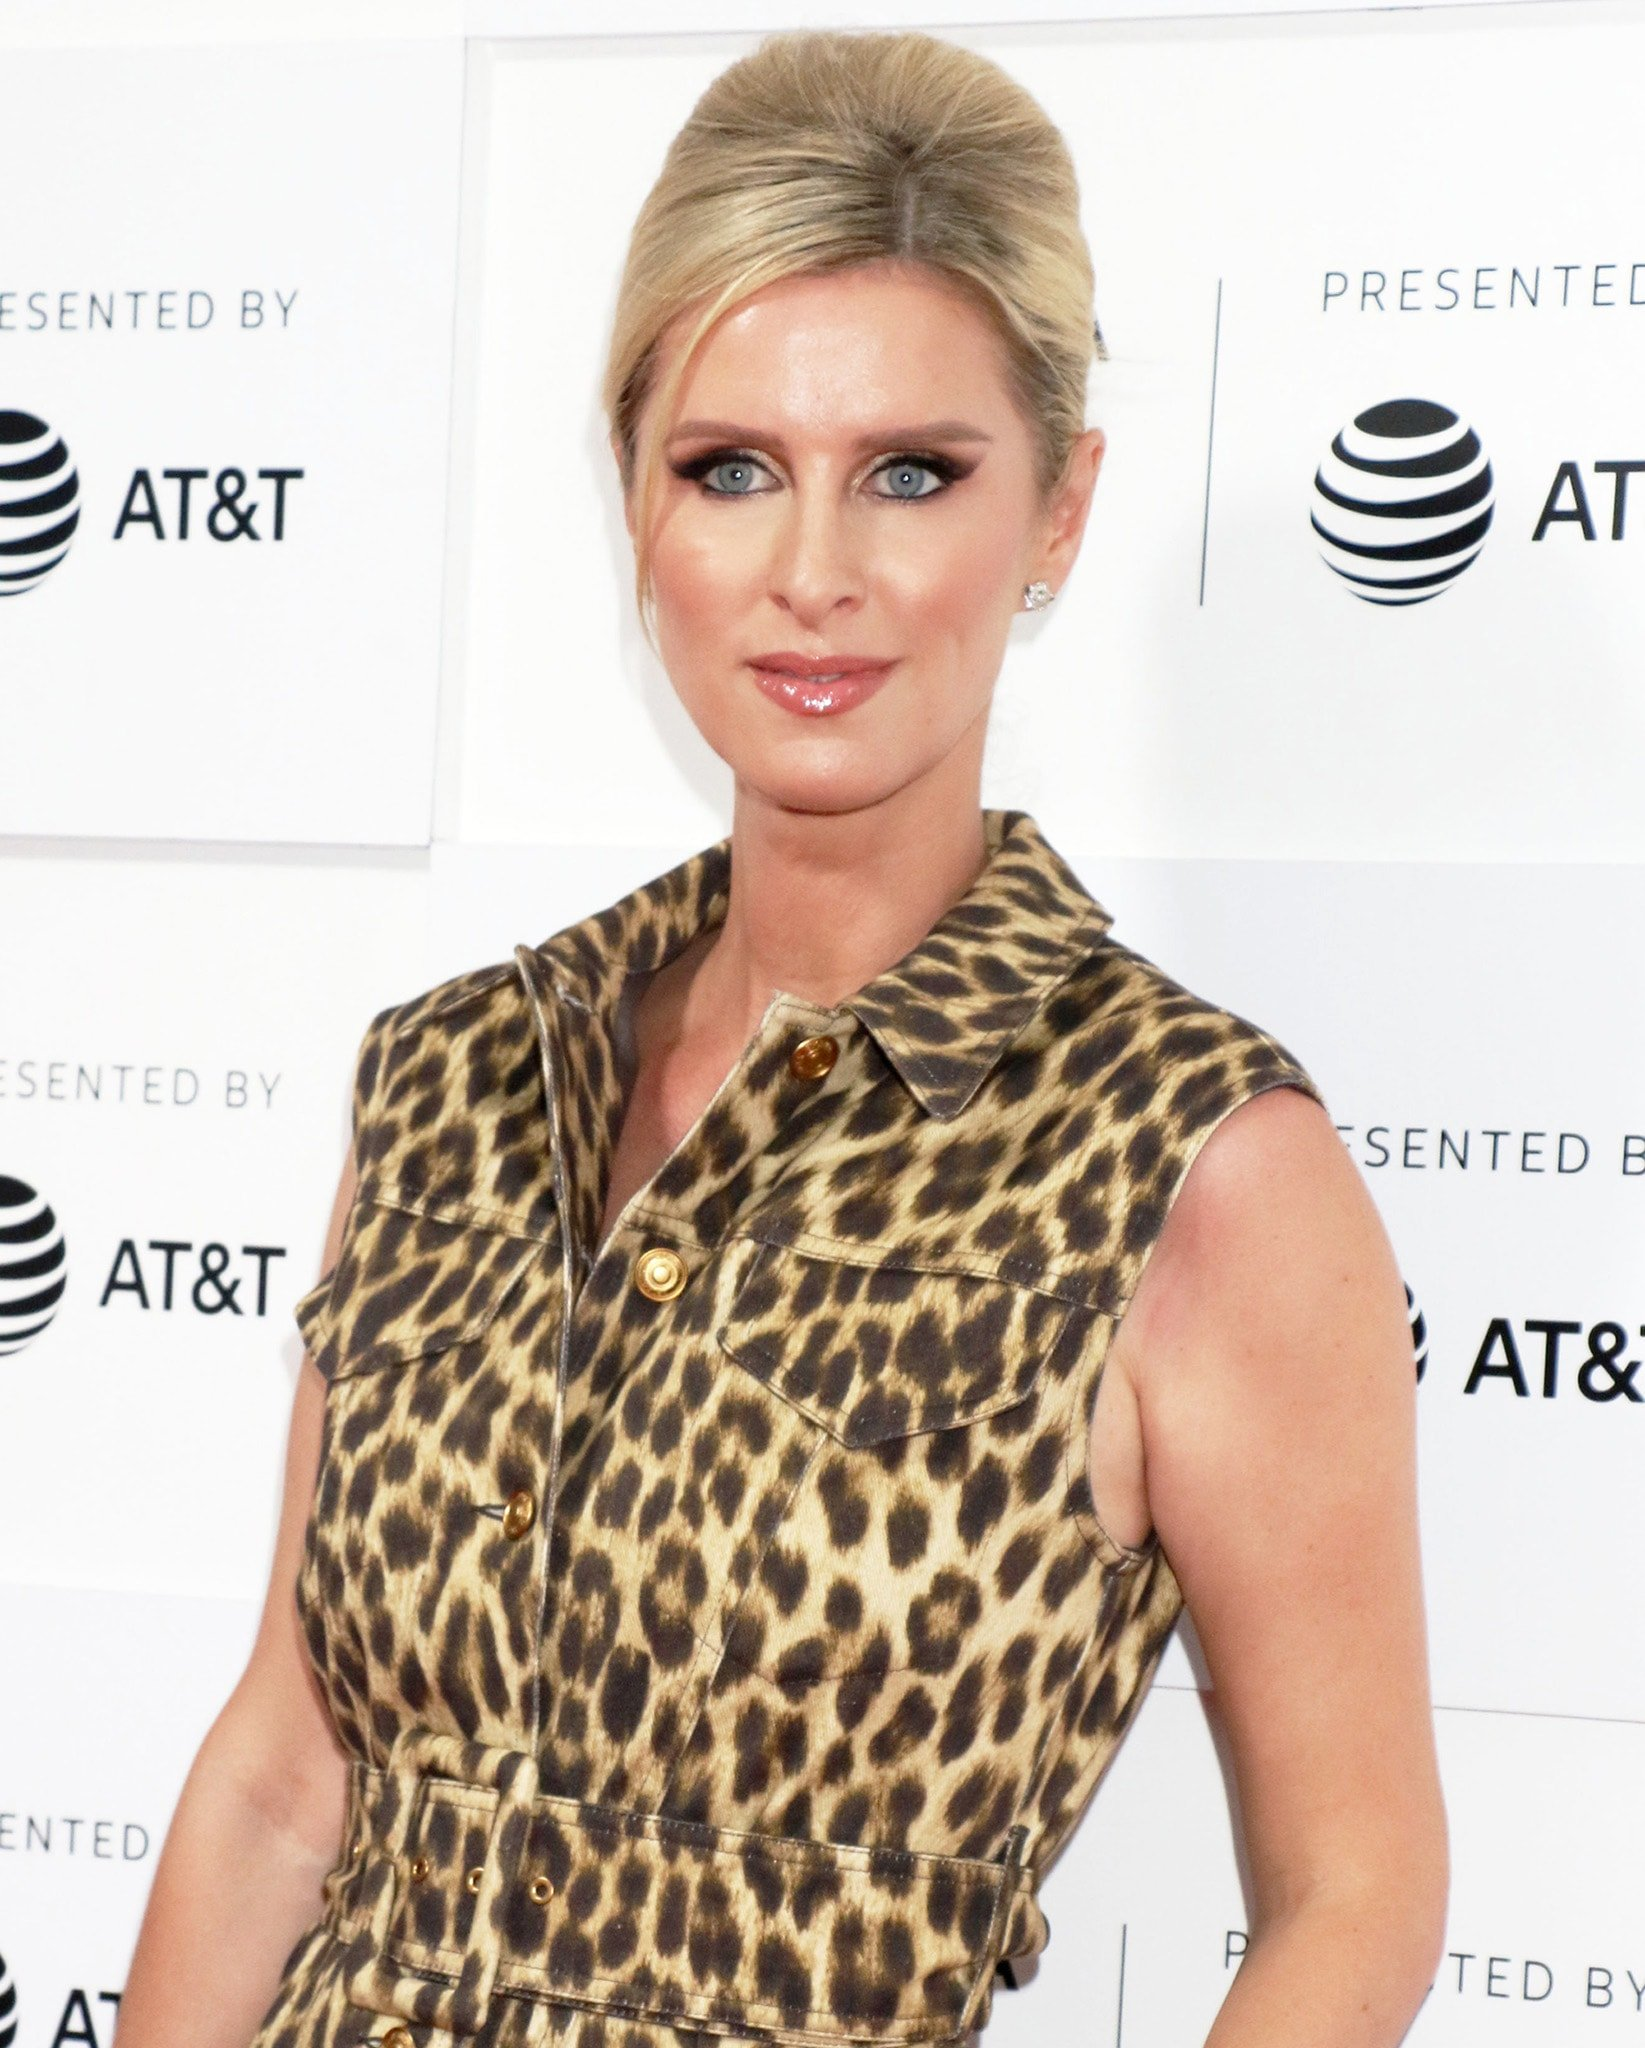 Nicky Hilton styles her blonde tresses into a chic updo and wears smokey eyeshadow with nude lipgloss